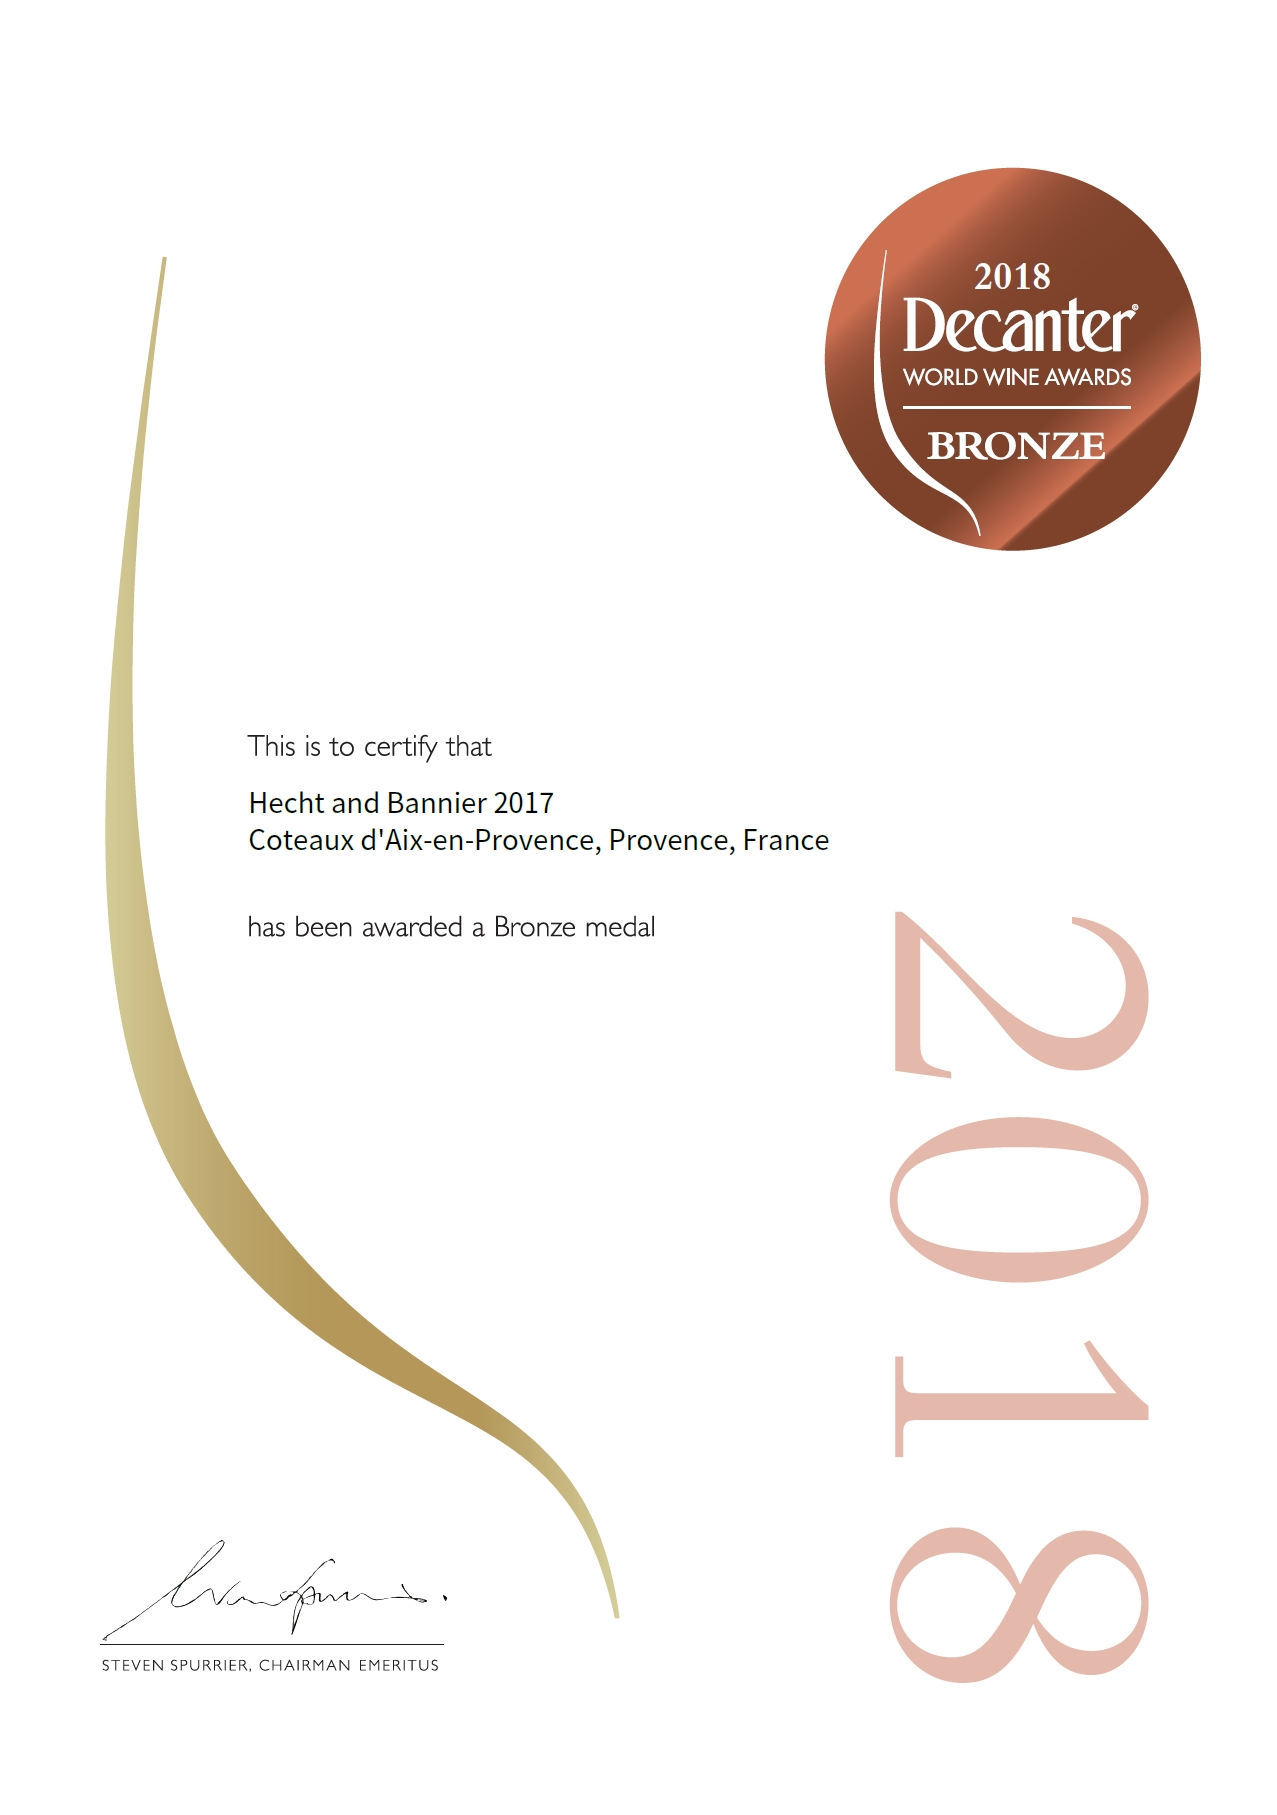 decanter world wine awards / coteaux d'aix-en-provence rosé 2017